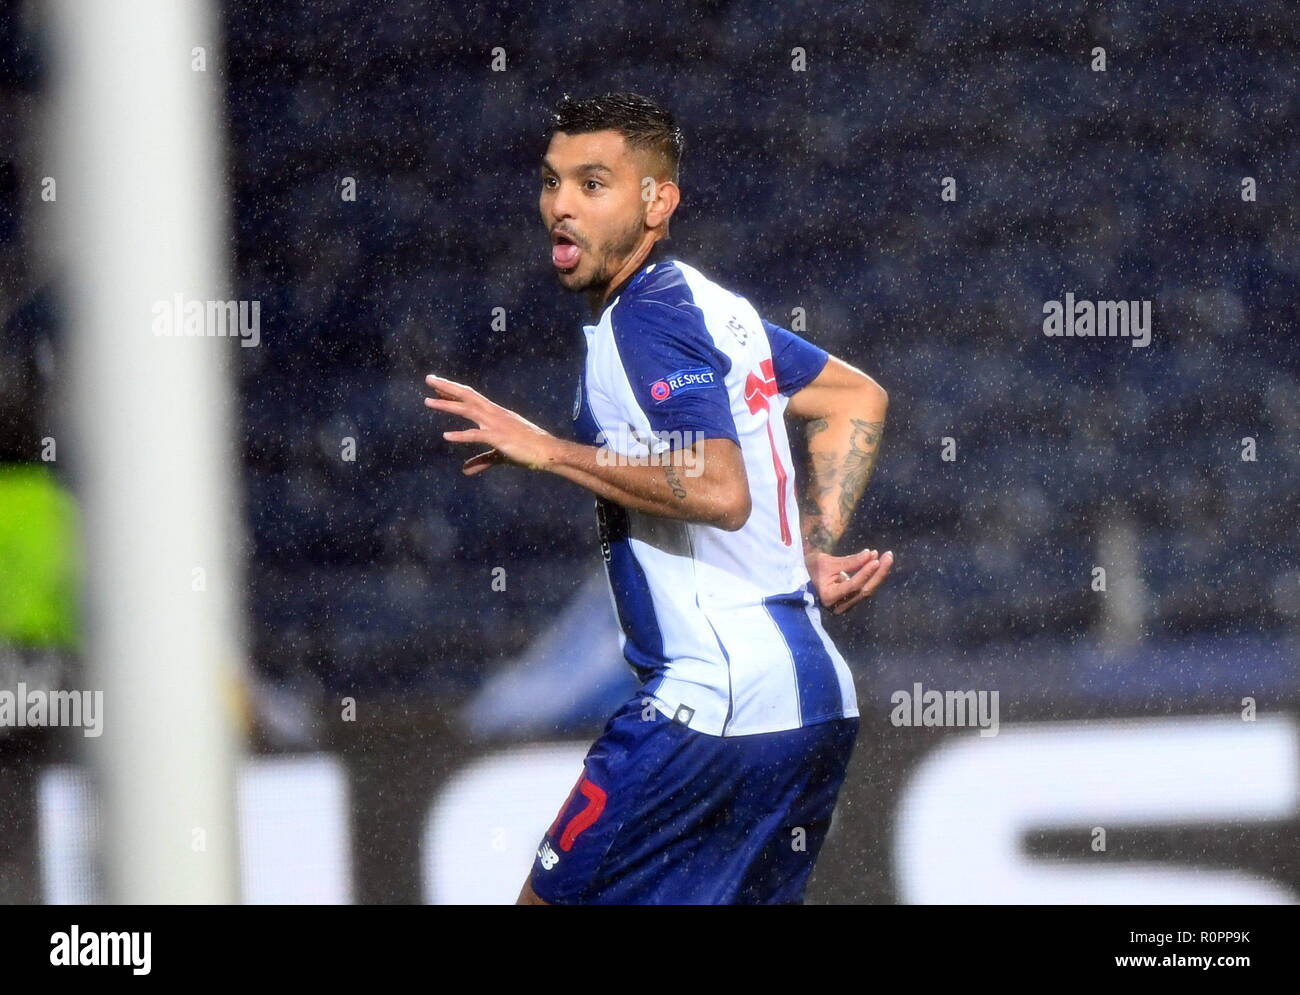 c035f53df3a7e Porto, Portugal. 6th Nov, 2018. Jesus Corona of Porto celebrates scoring  during